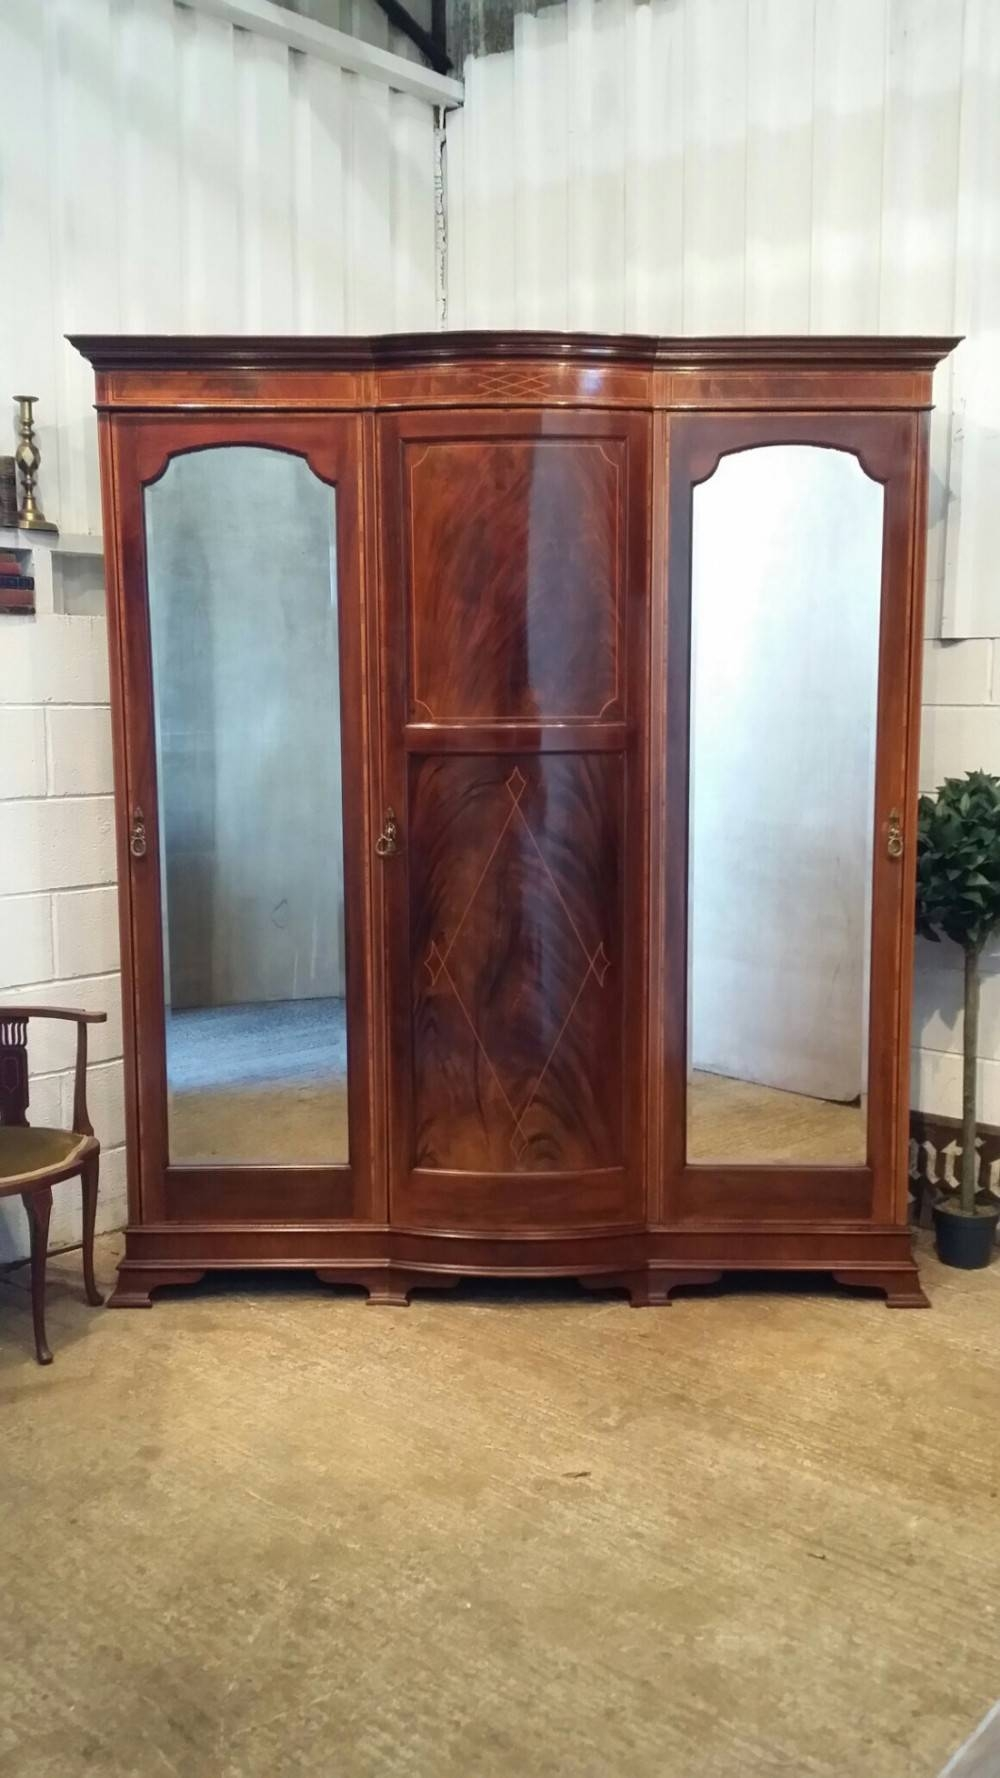 Antique Edwardian Inlaid Mahogany Triple Bow Breakfront Wardrobe for Breakfront Wardrobe (Image 1 of 30)